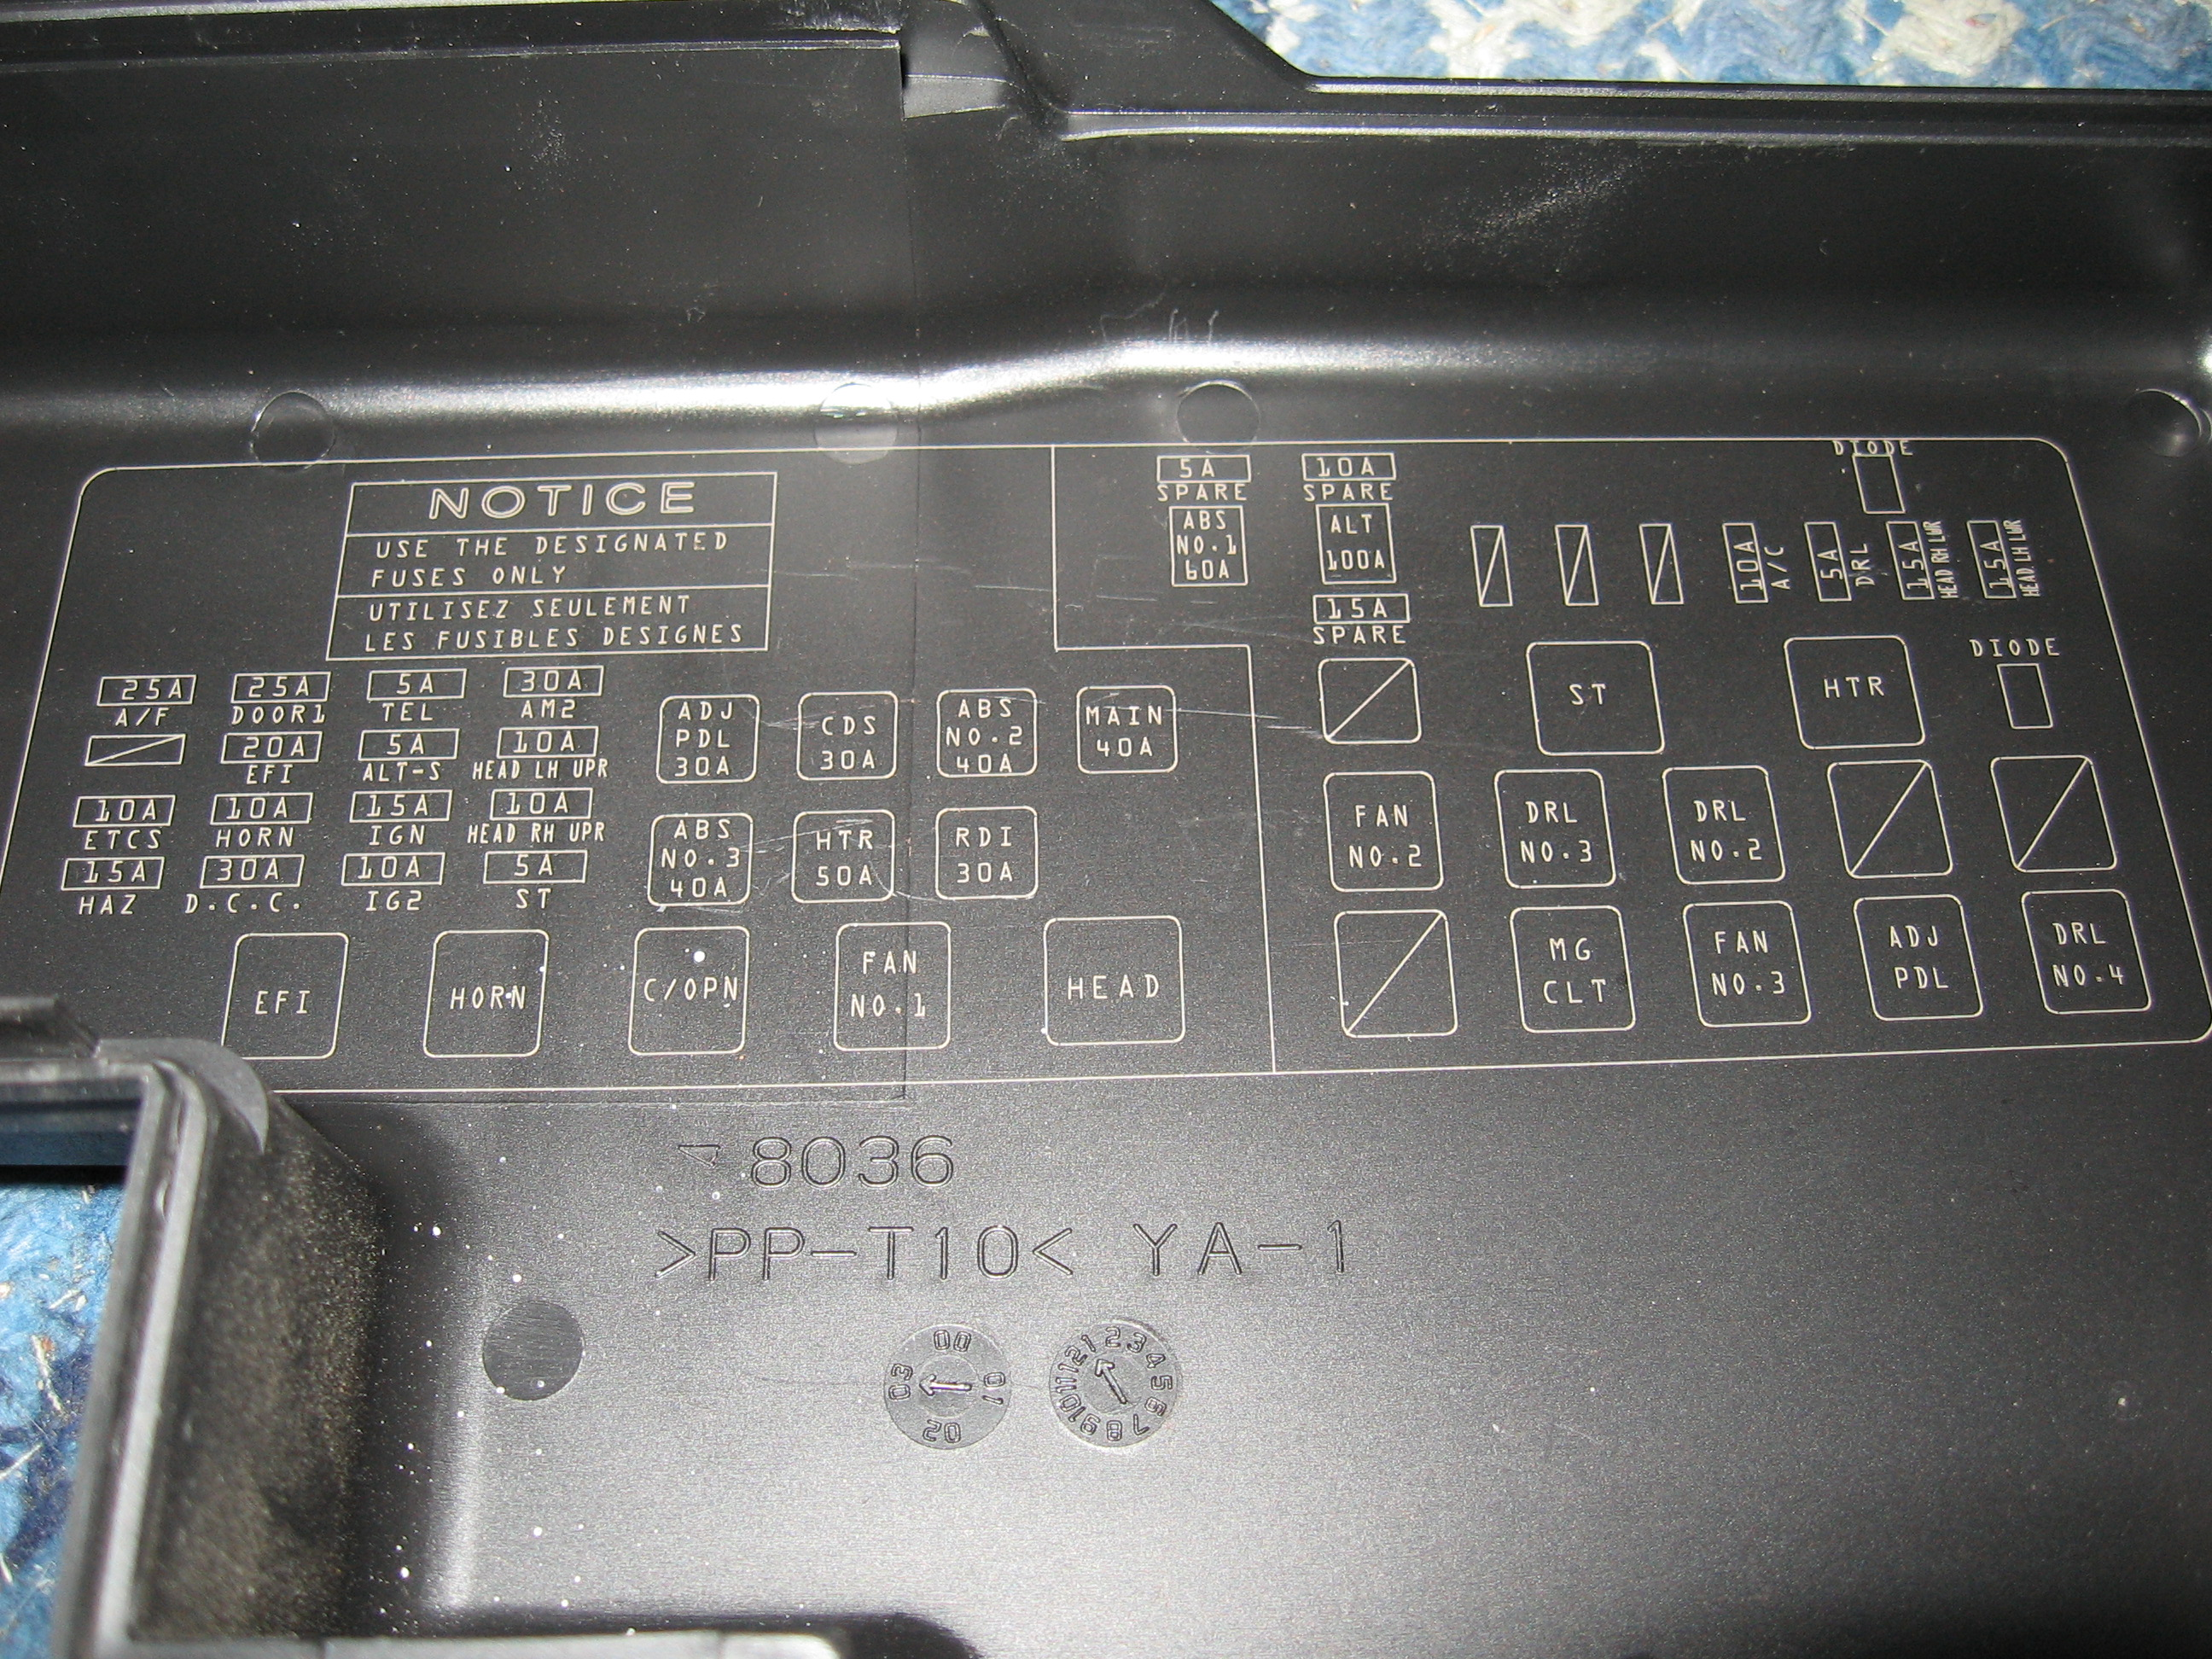 03 Sienna Fuse Box Great Design Of Wiring Diagram Toyota Location 2004 Get Free Image About Supply Air Graphics